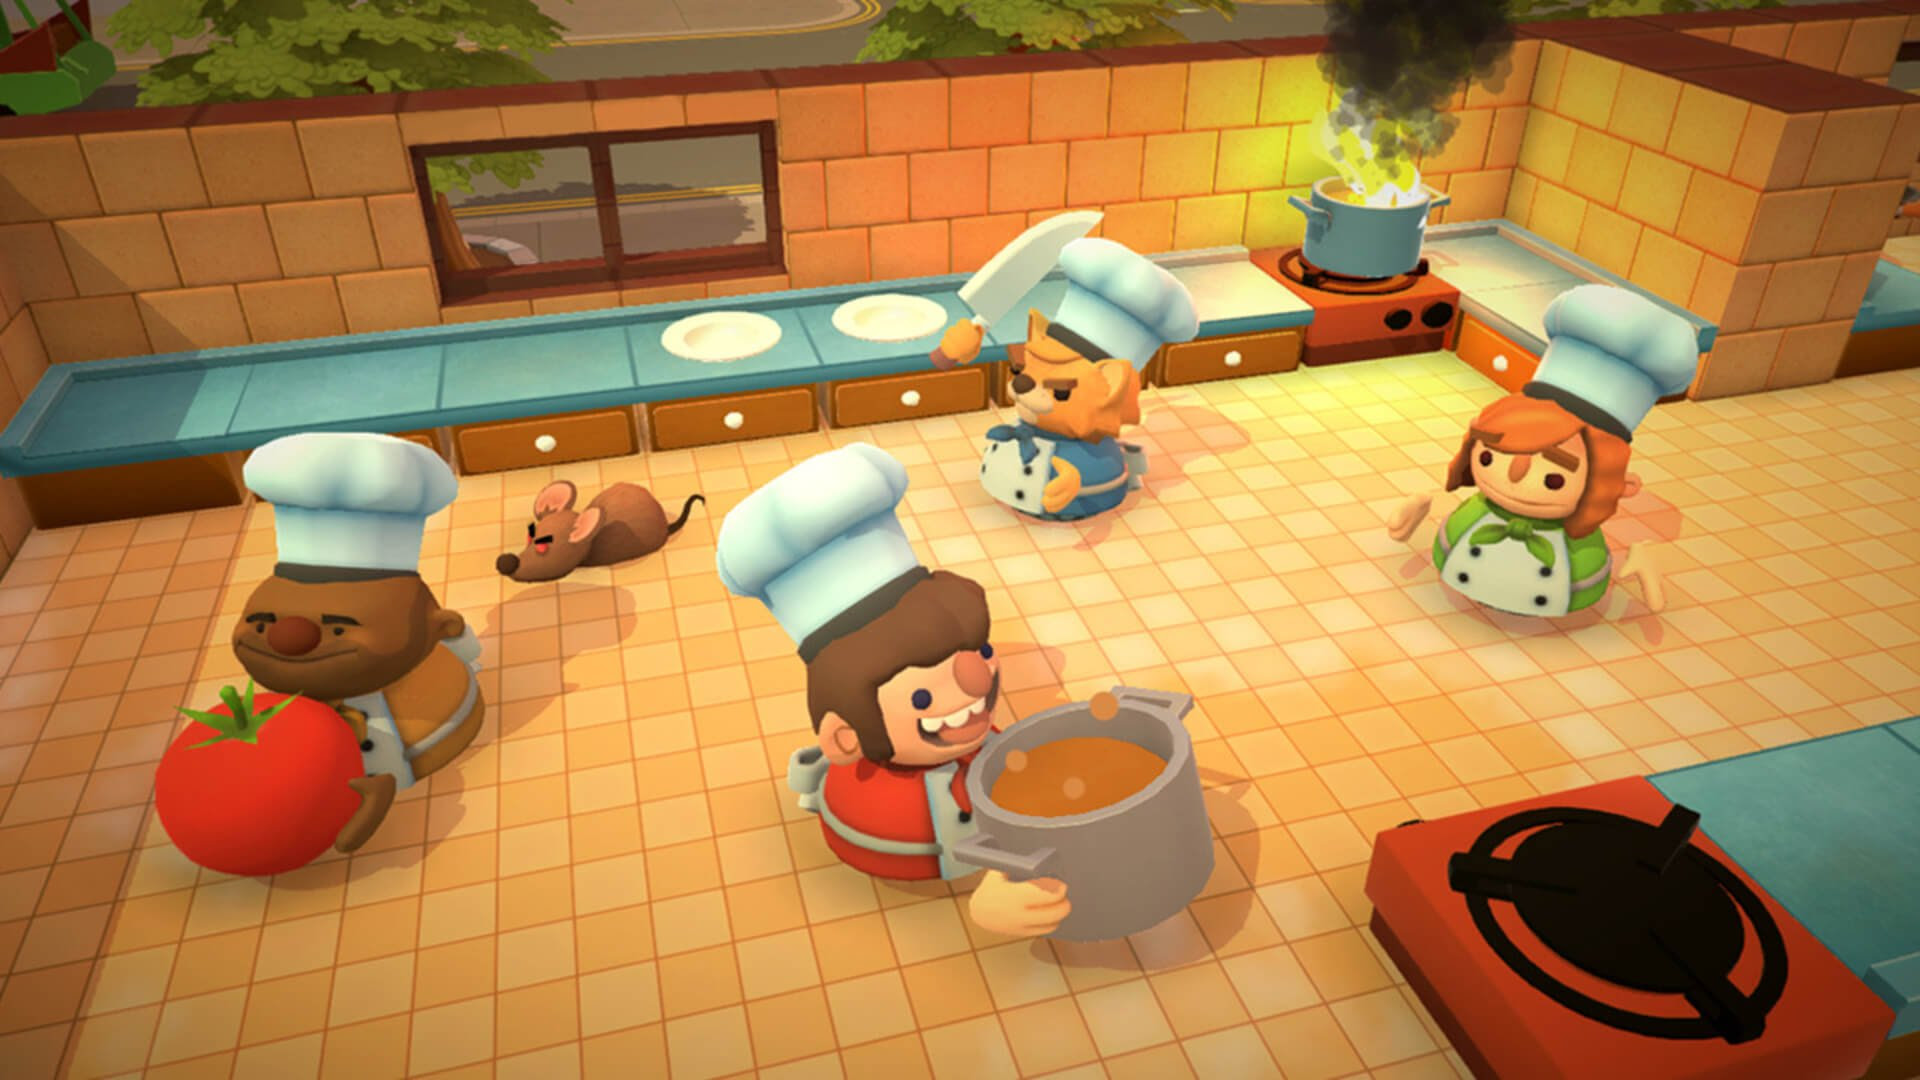 I foresee many a Joy-Con being broken when Overcooked hits Switch screenshot